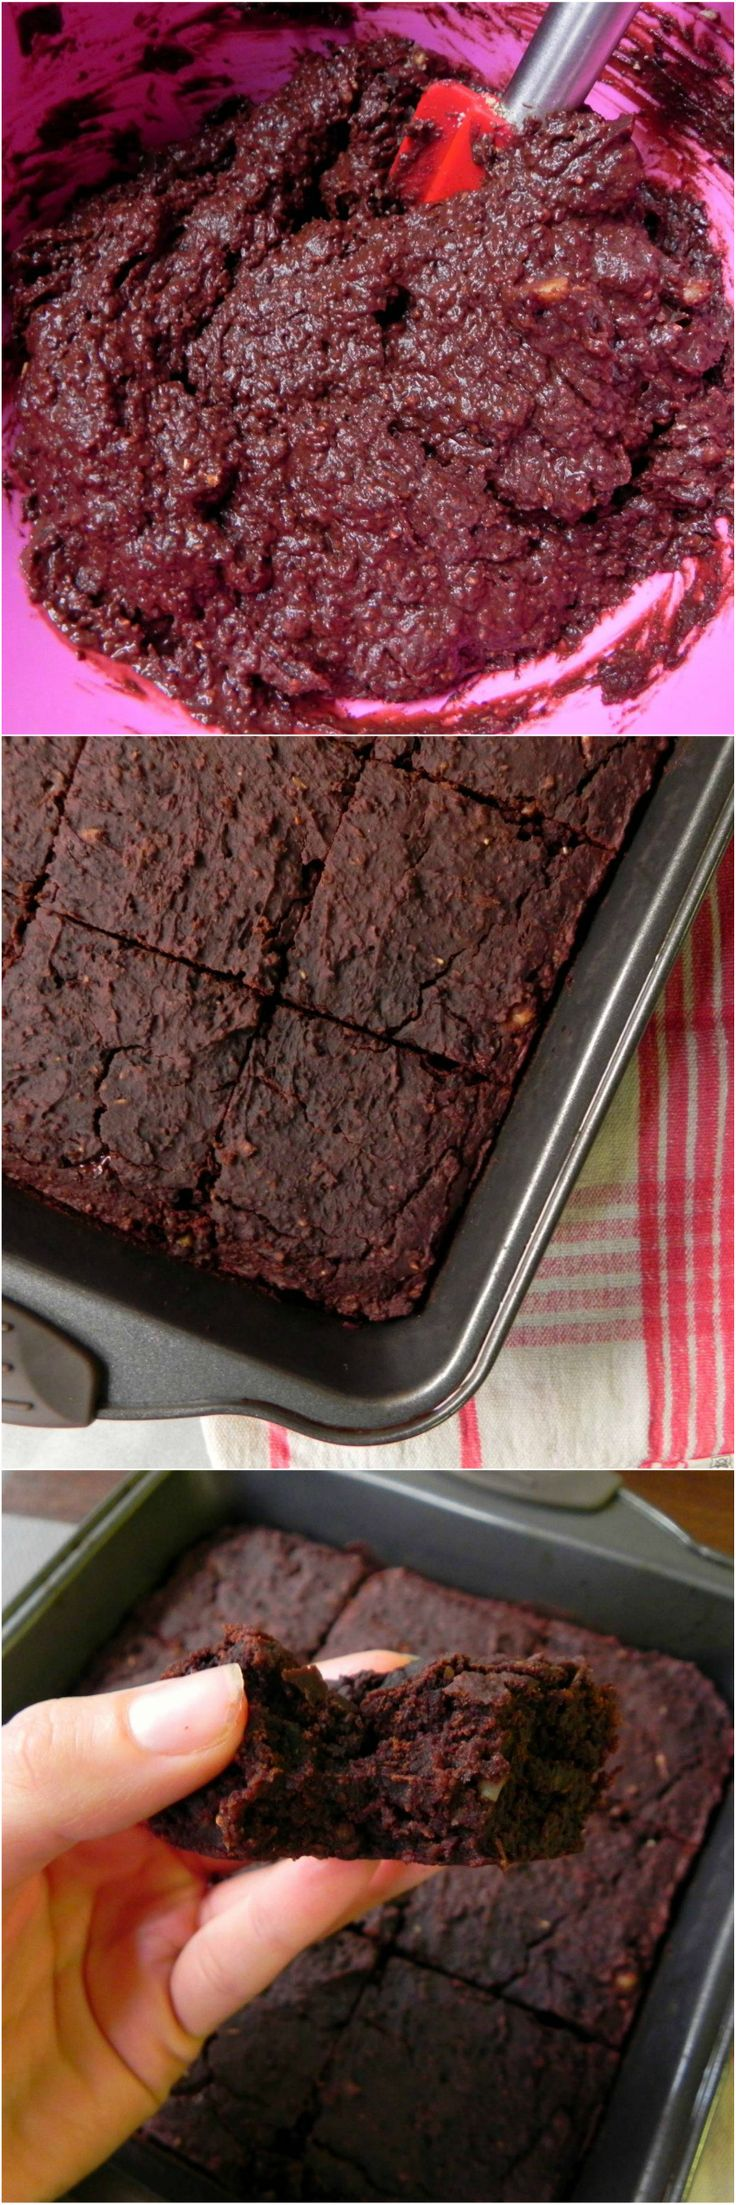 Fudgey Pumpkin Flourless Black Bean Brownies are fudgey, thick, chocolatey & filled with with melty chocolate chunks. Nobody will guess these brownies are secretly healthy! #vegan #healthy #glutenfree - Ceara's Kitchen